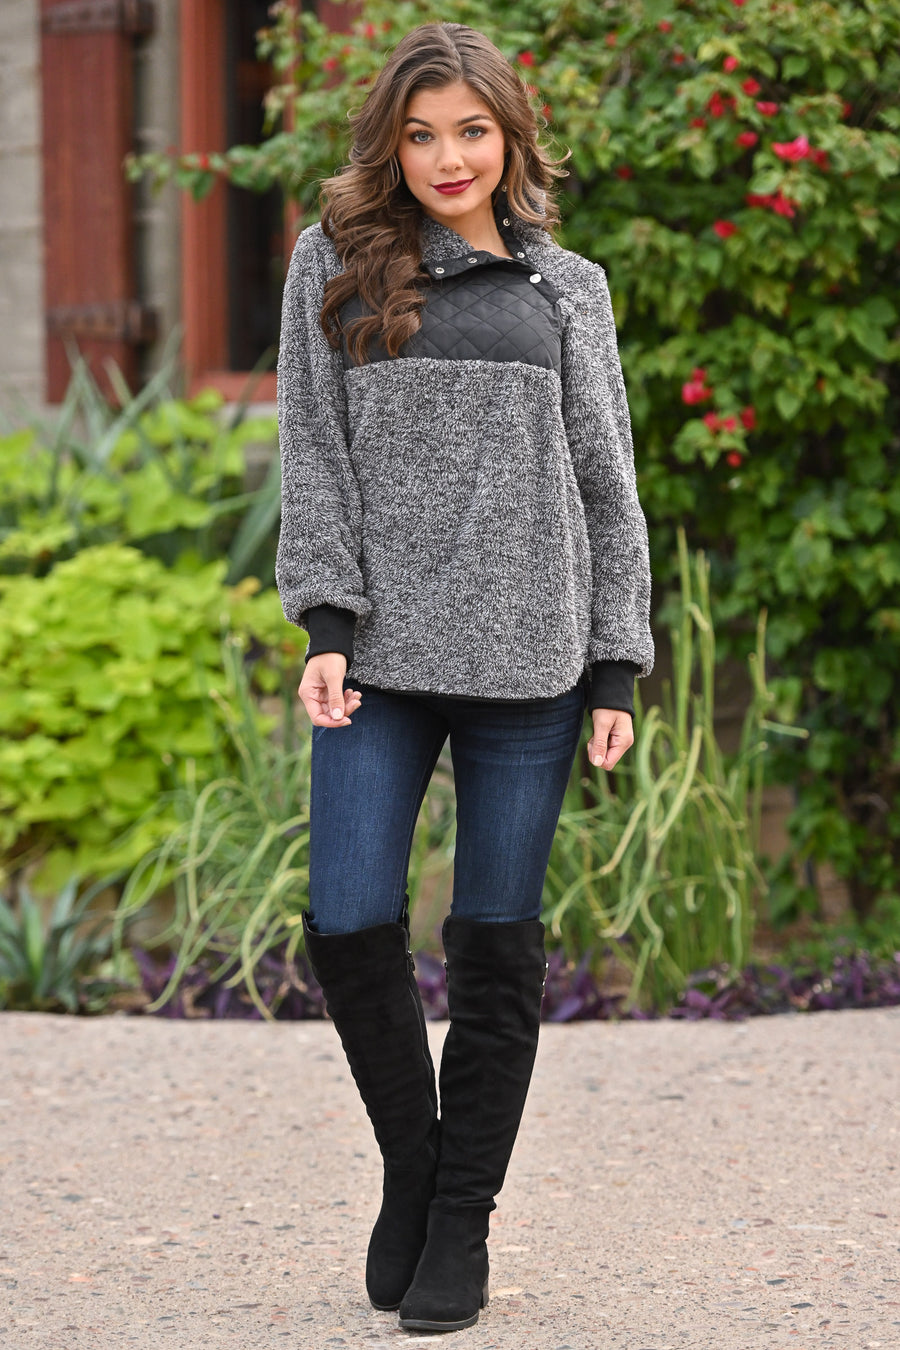 Hot Cocoa Cozy Pullover - Charcoal women's soft fuzzy pullover sweater top, Closet Candy Boutique 1